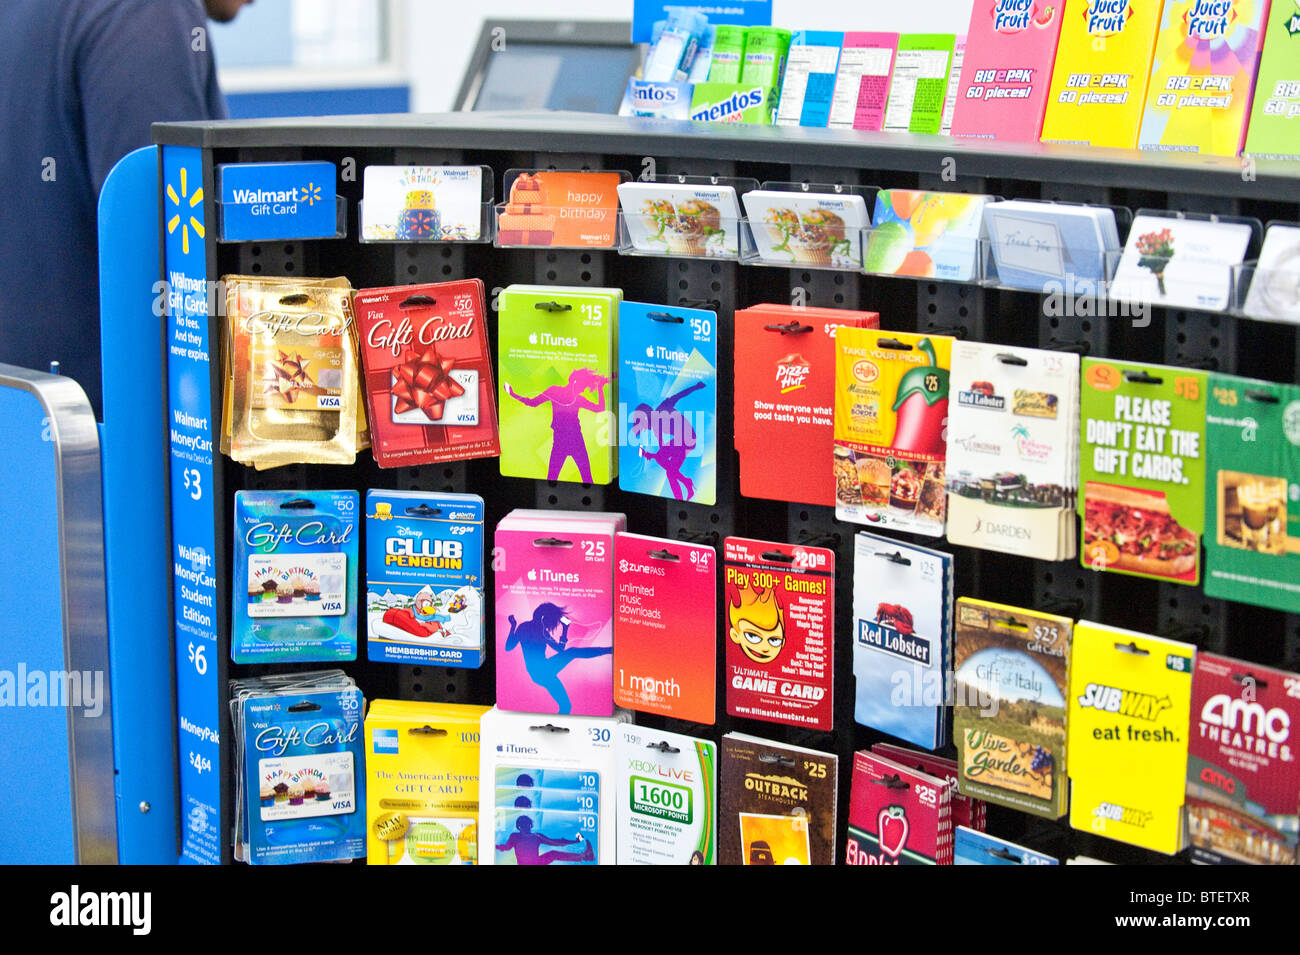 Large Selection Of Gift Cards On Display At Wal Mart Store In Austin